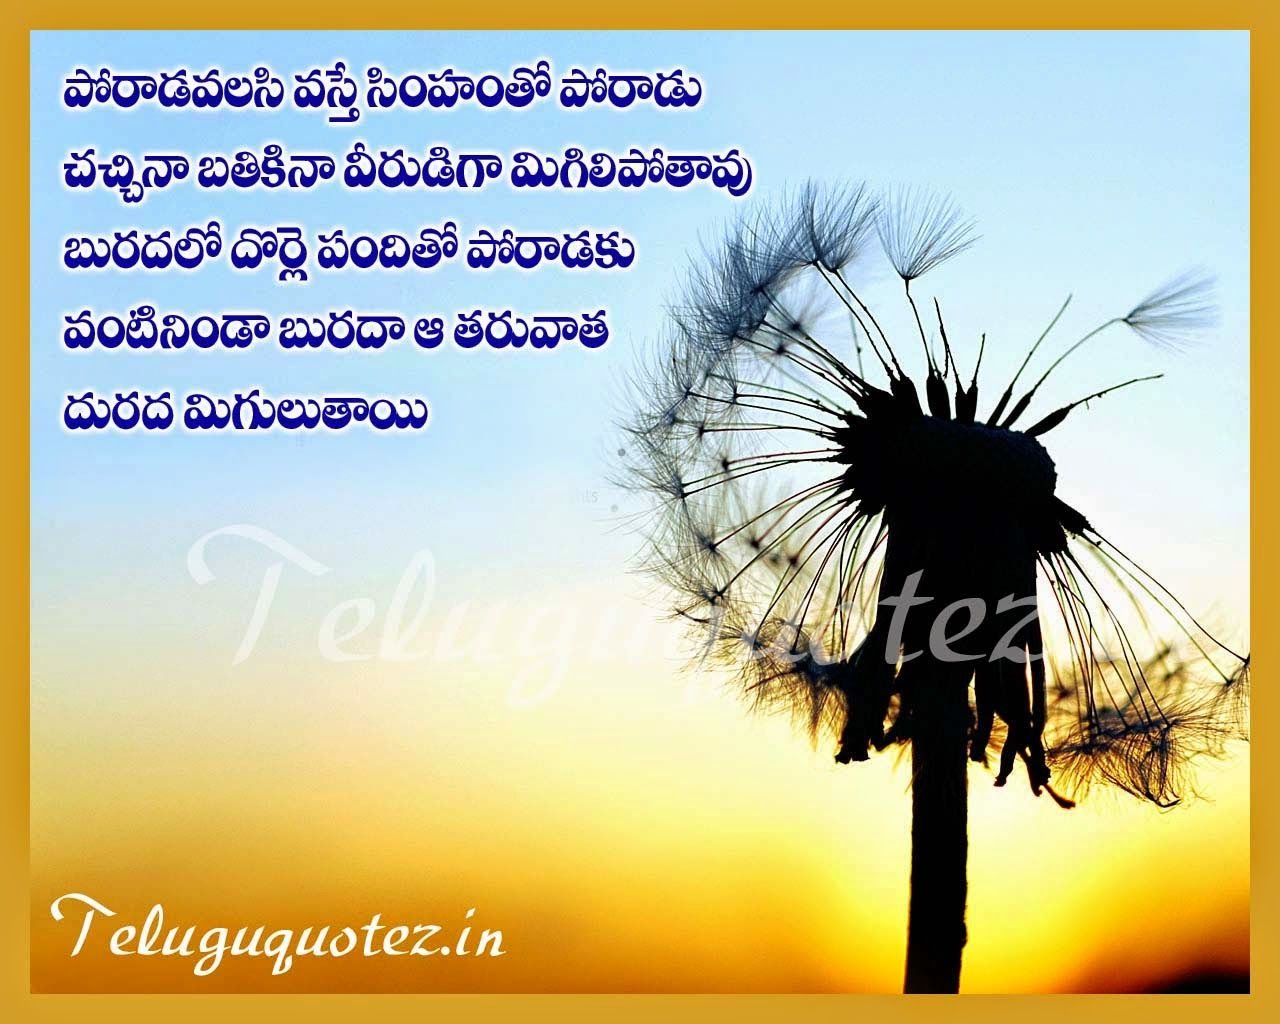 Teluguquotezin Motivational Quotes On Life In Telugu Language